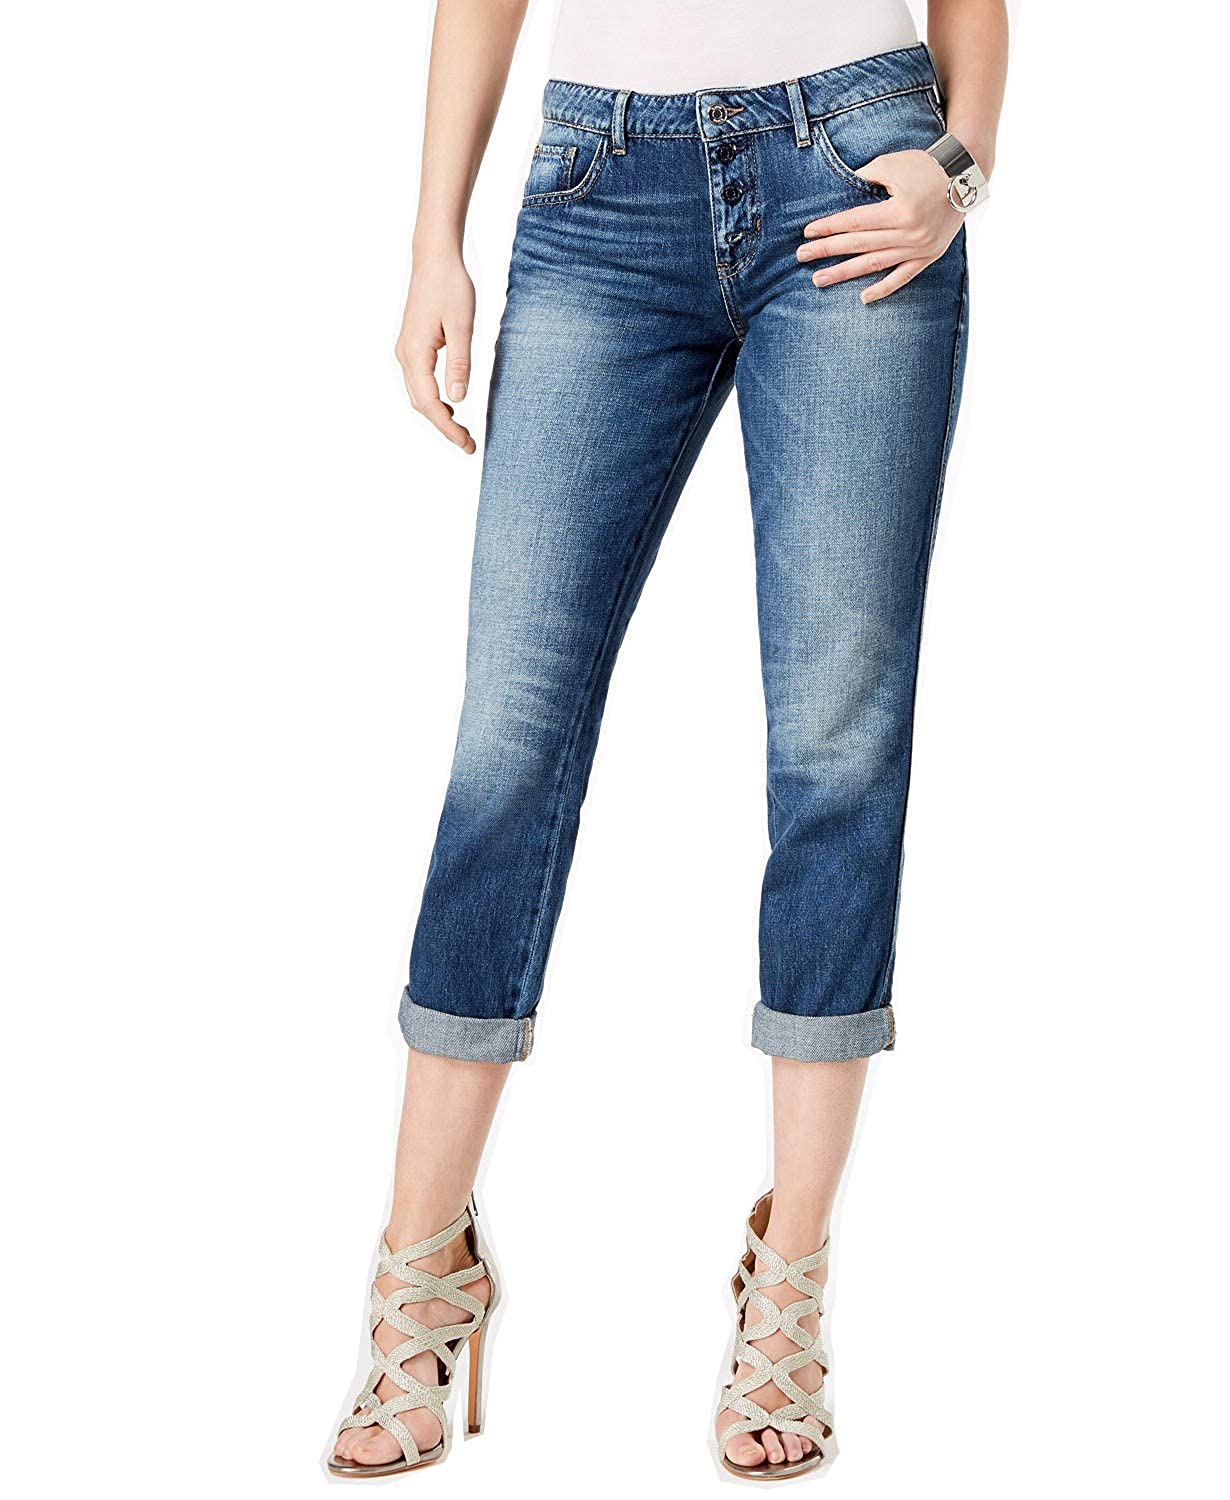 great look great discount for shades of Guess Womens Tomboy Denim Dark Wash Boyfriend Jeans Blue 31 ...